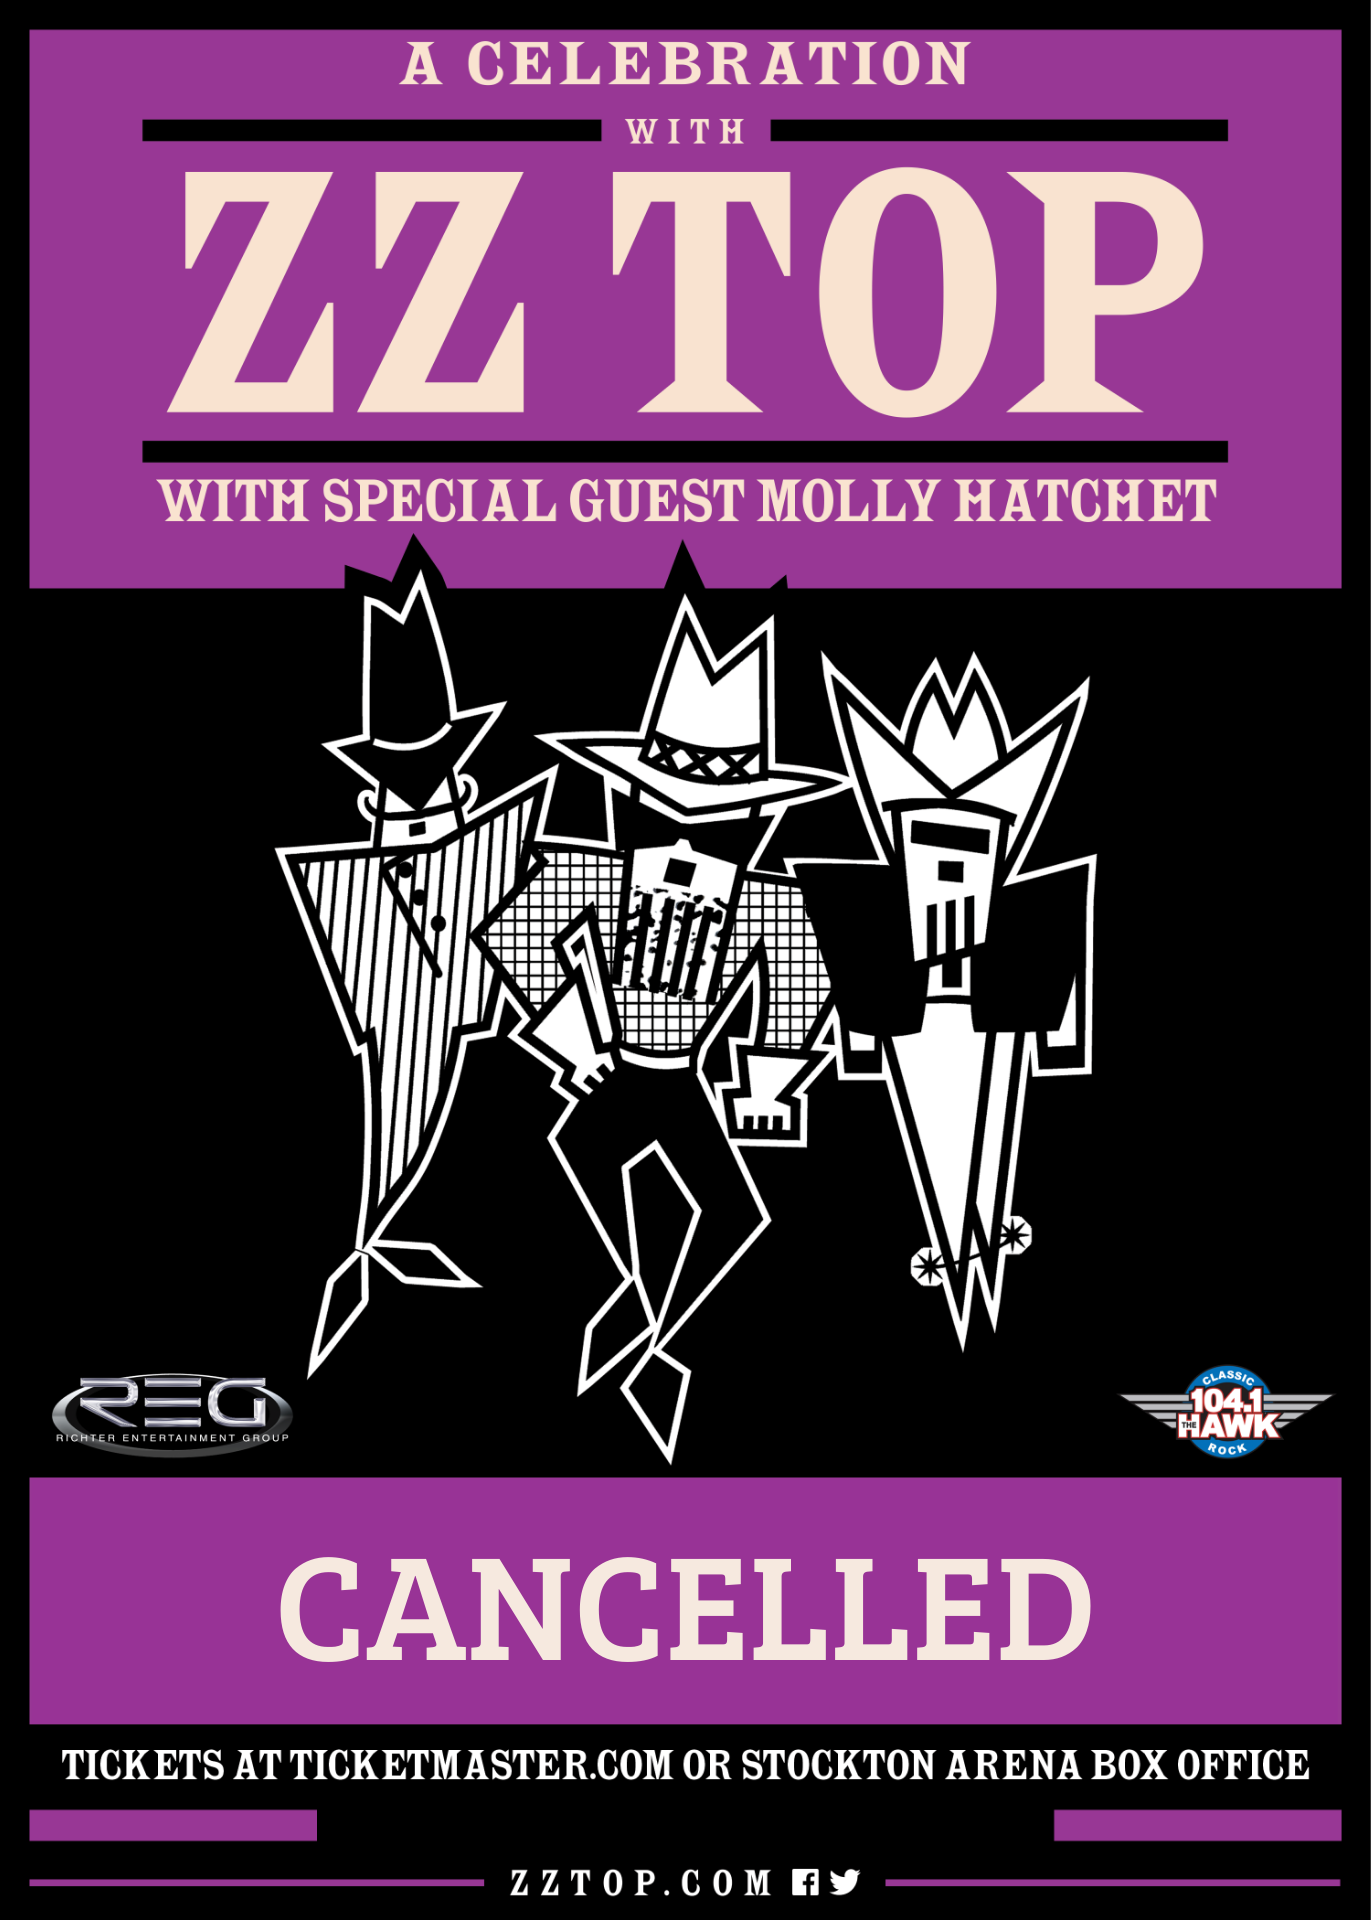 ZZ Top with Molly Hatchet April 26th at Stockton Arena